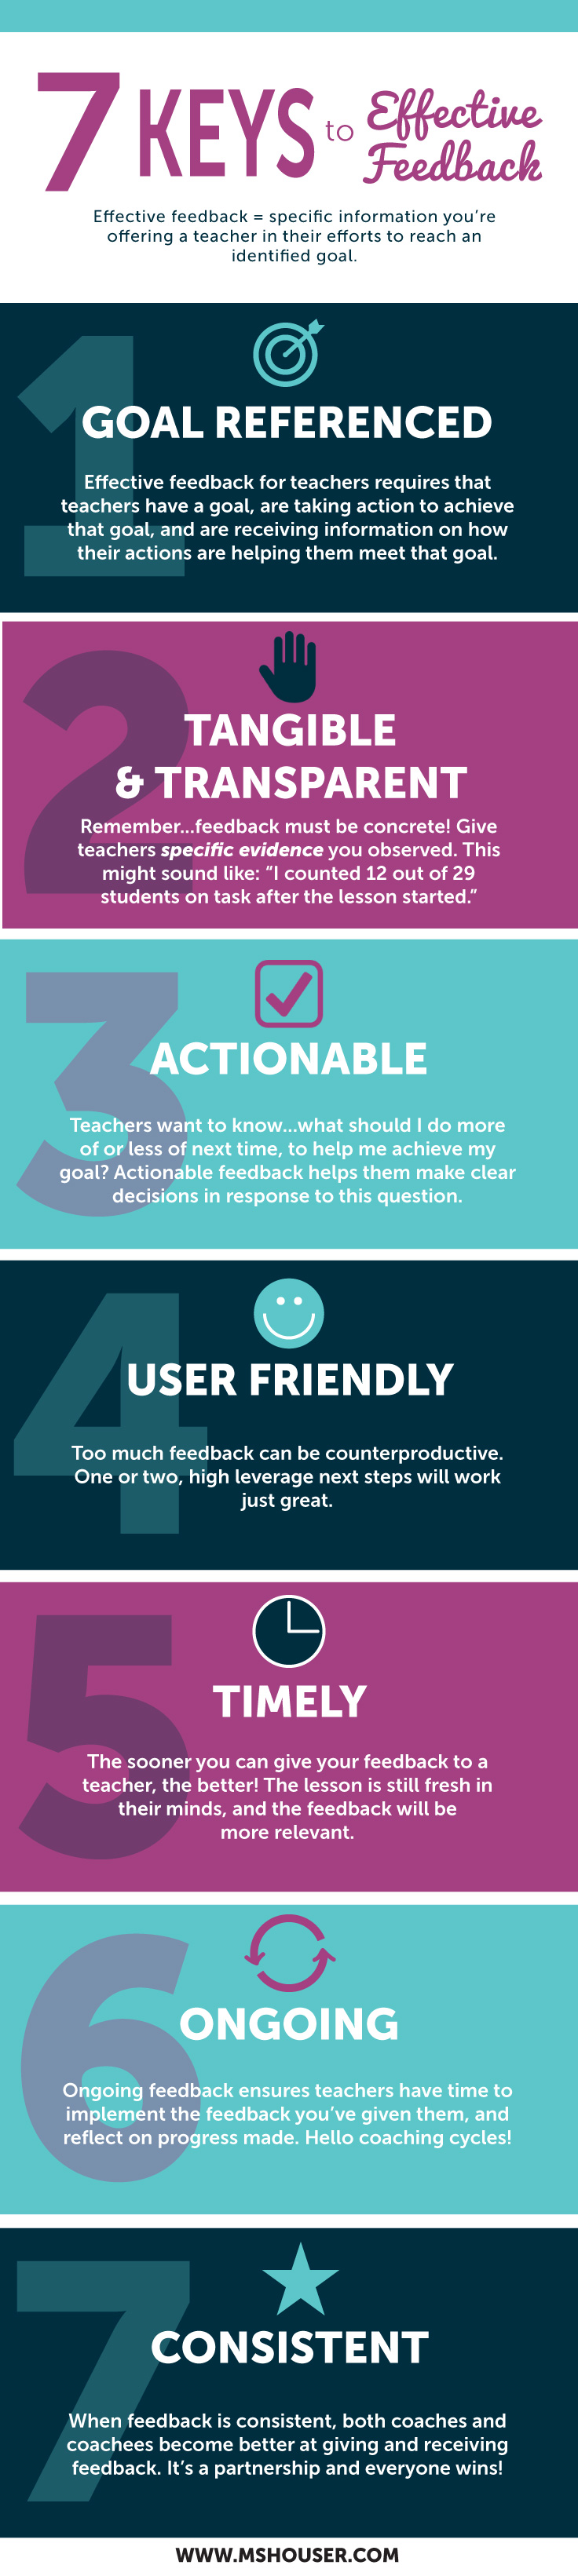 7-Keys-to-Effective-Feedback1